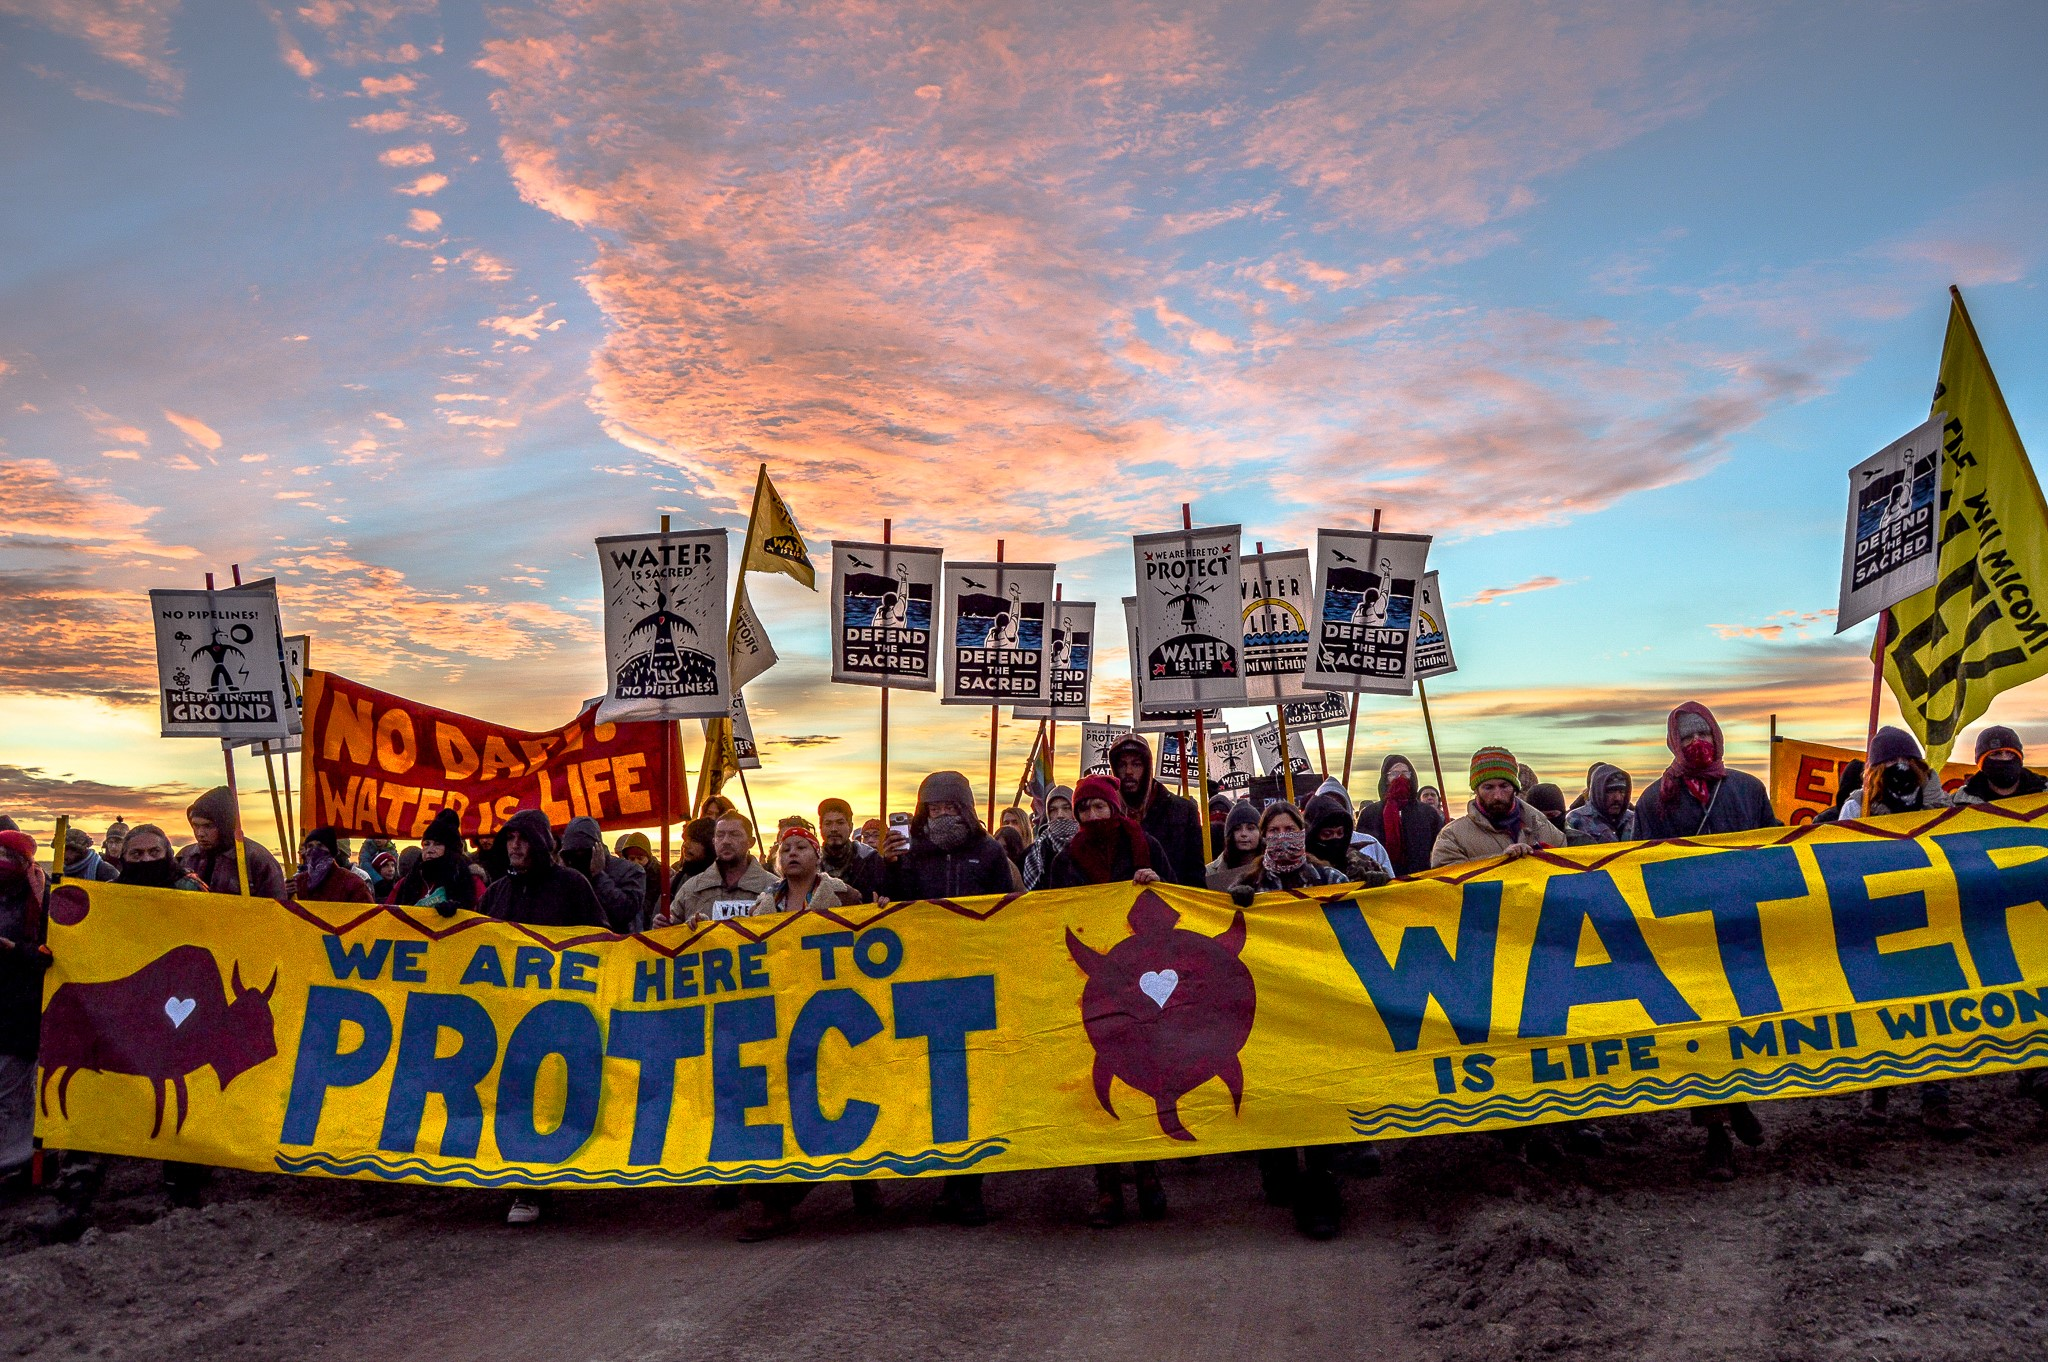 Tiffany Midge: Don't shame the Standing Rock Sioux Tribe for the Dakota Access Pipeline